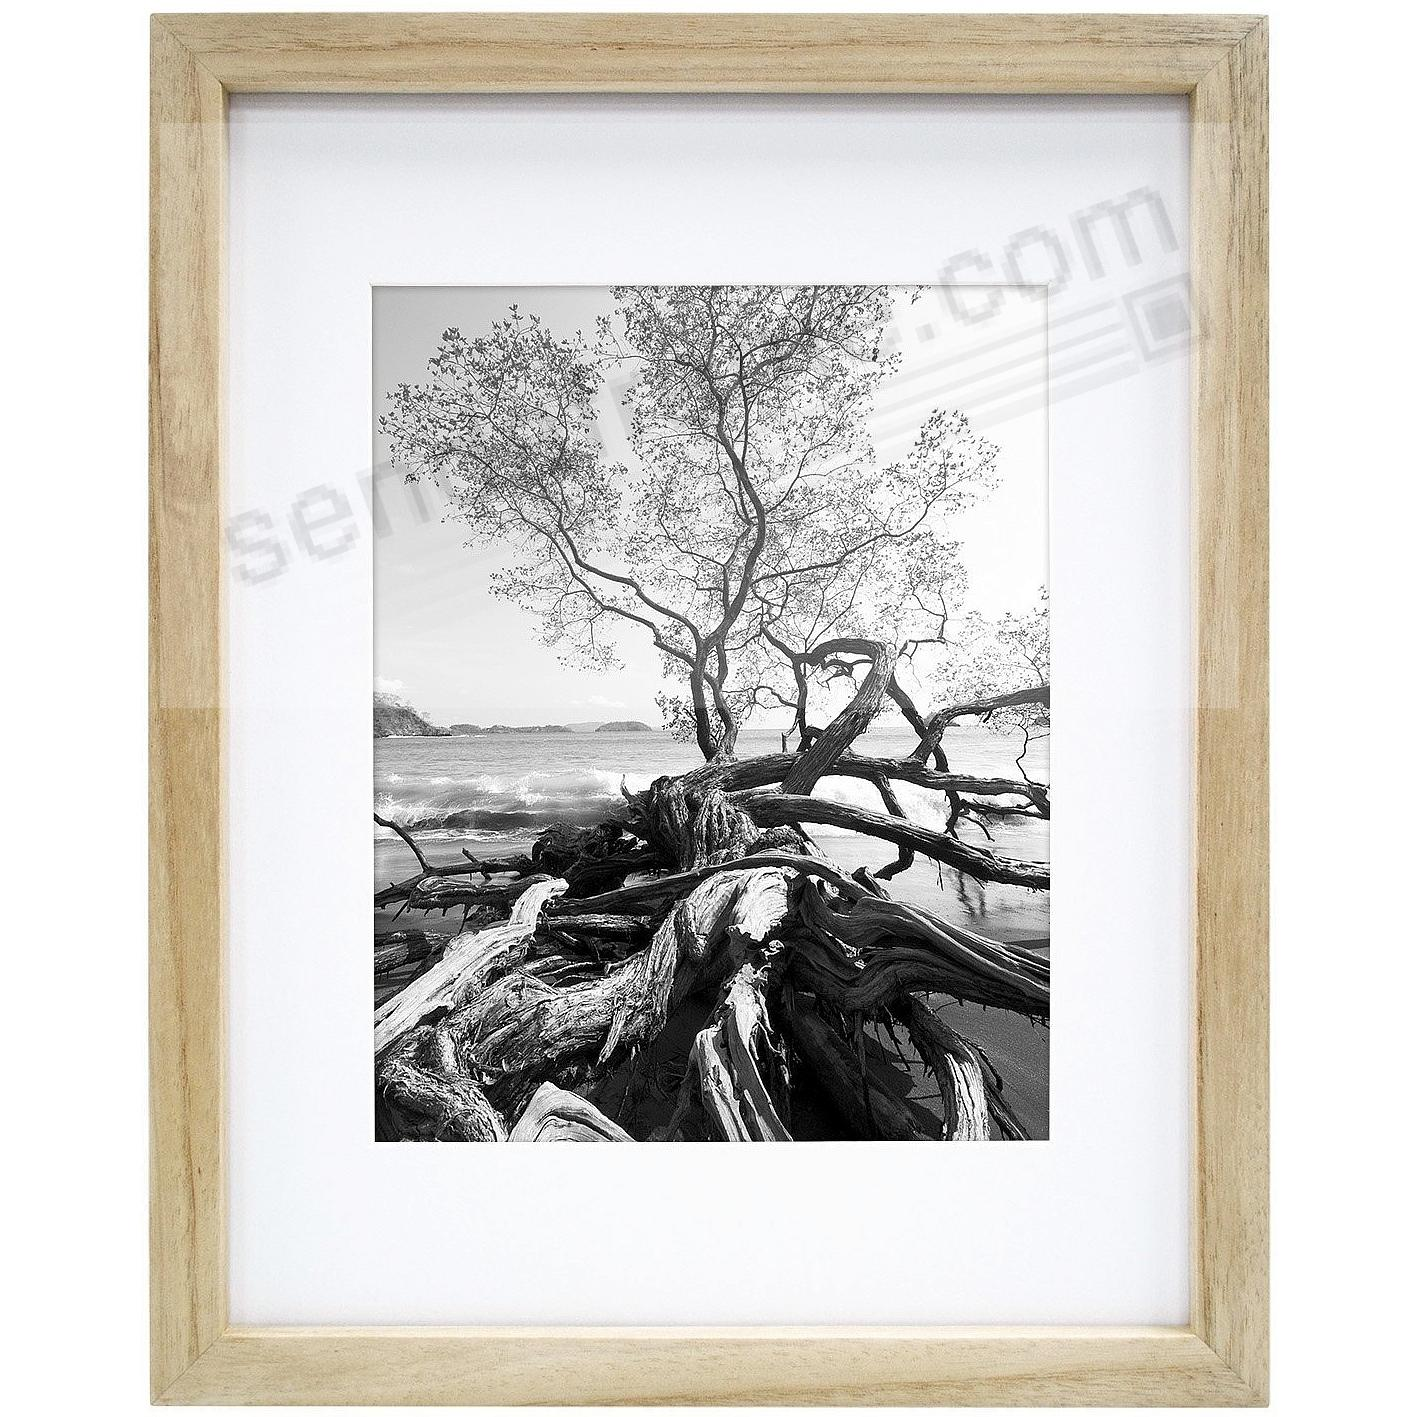 Art Shadow-Box 16x20/11x14 Natural Wood frame by MCS®